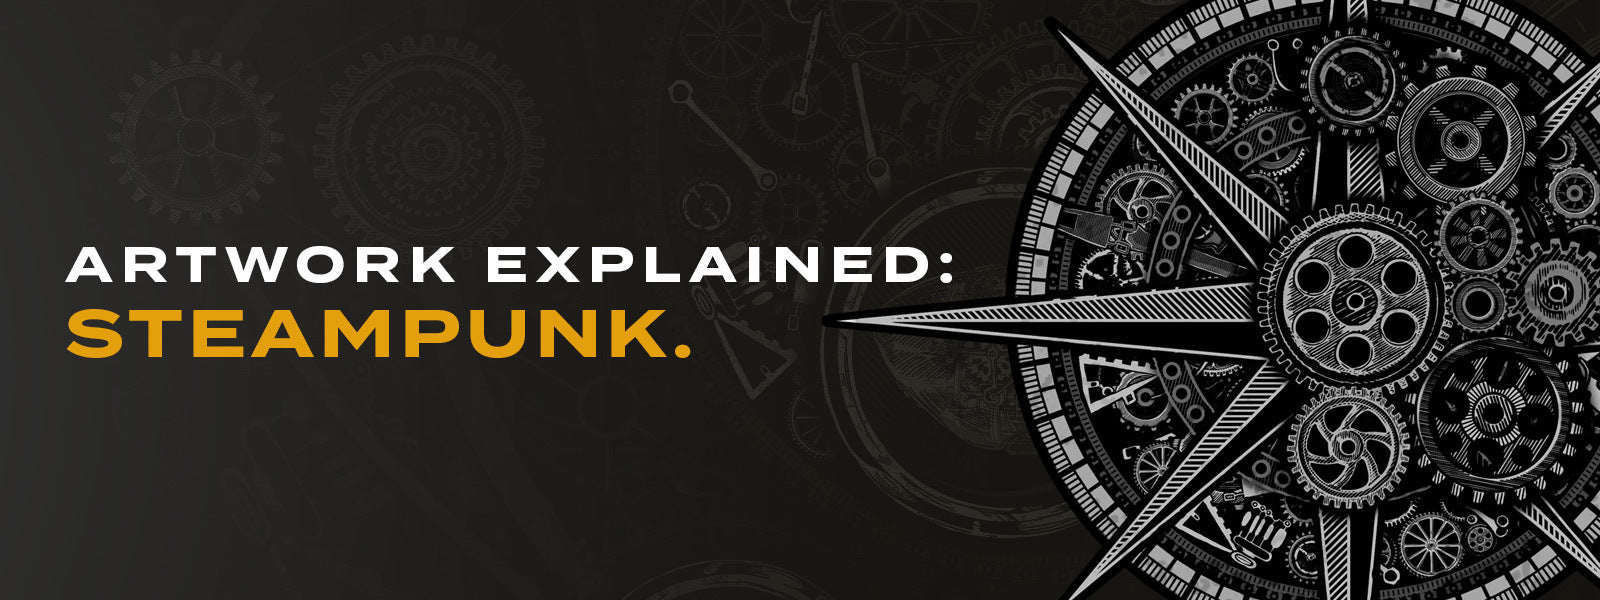 Artwork Explained: Steampunk